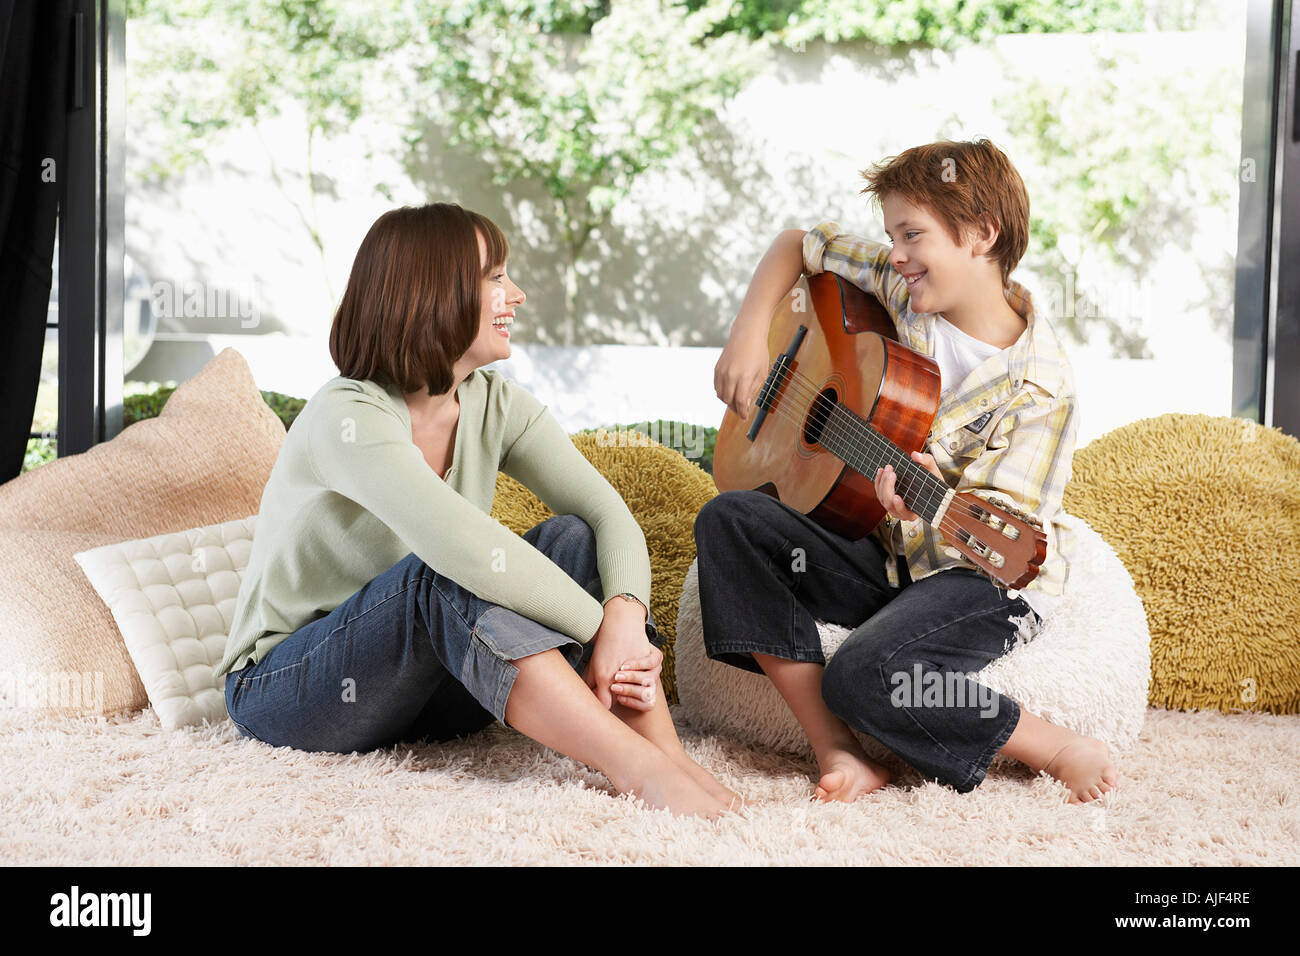 Mother listening to son play guitar - Stock Image